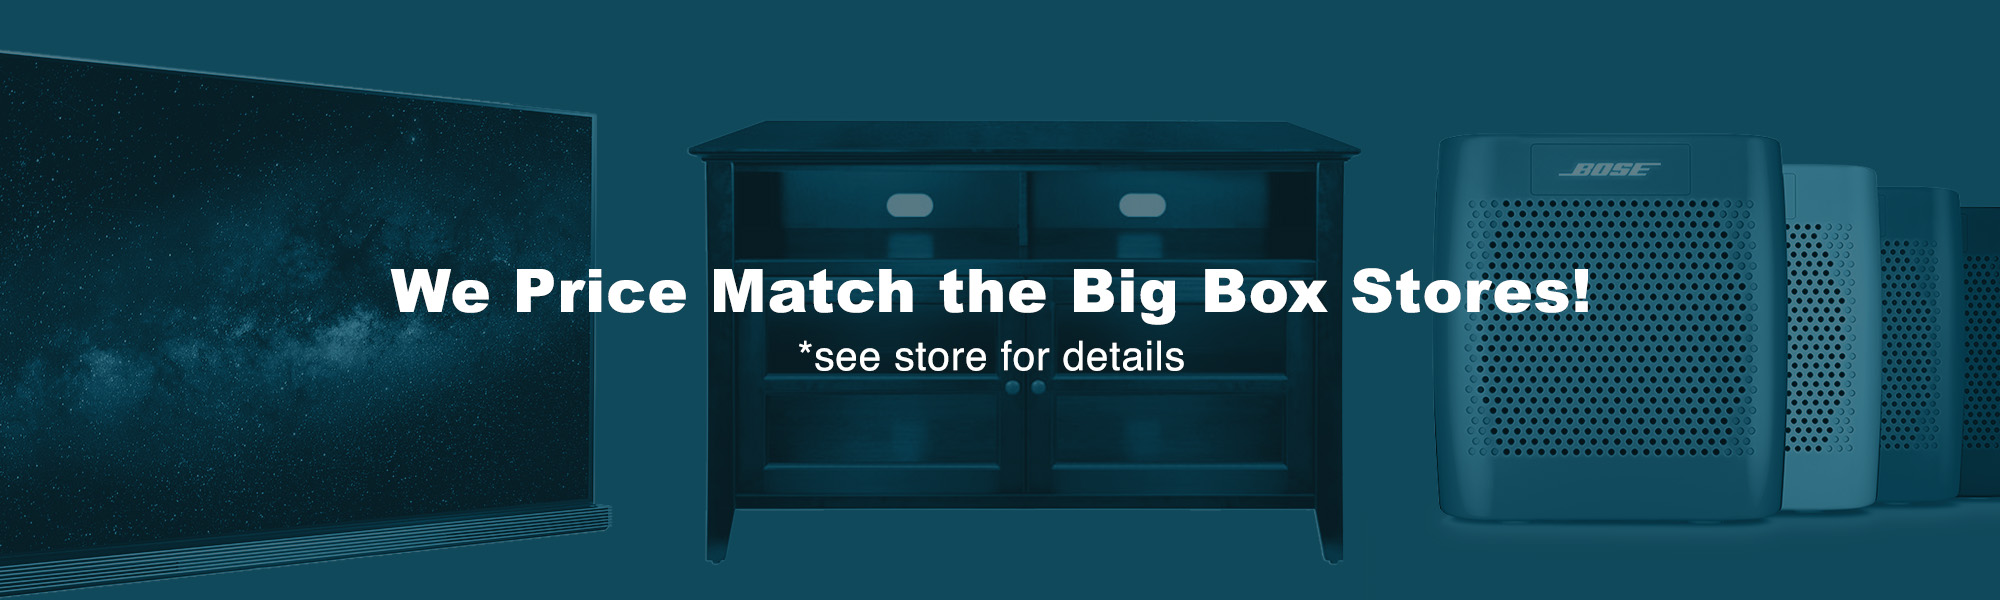 We price match the big box stores